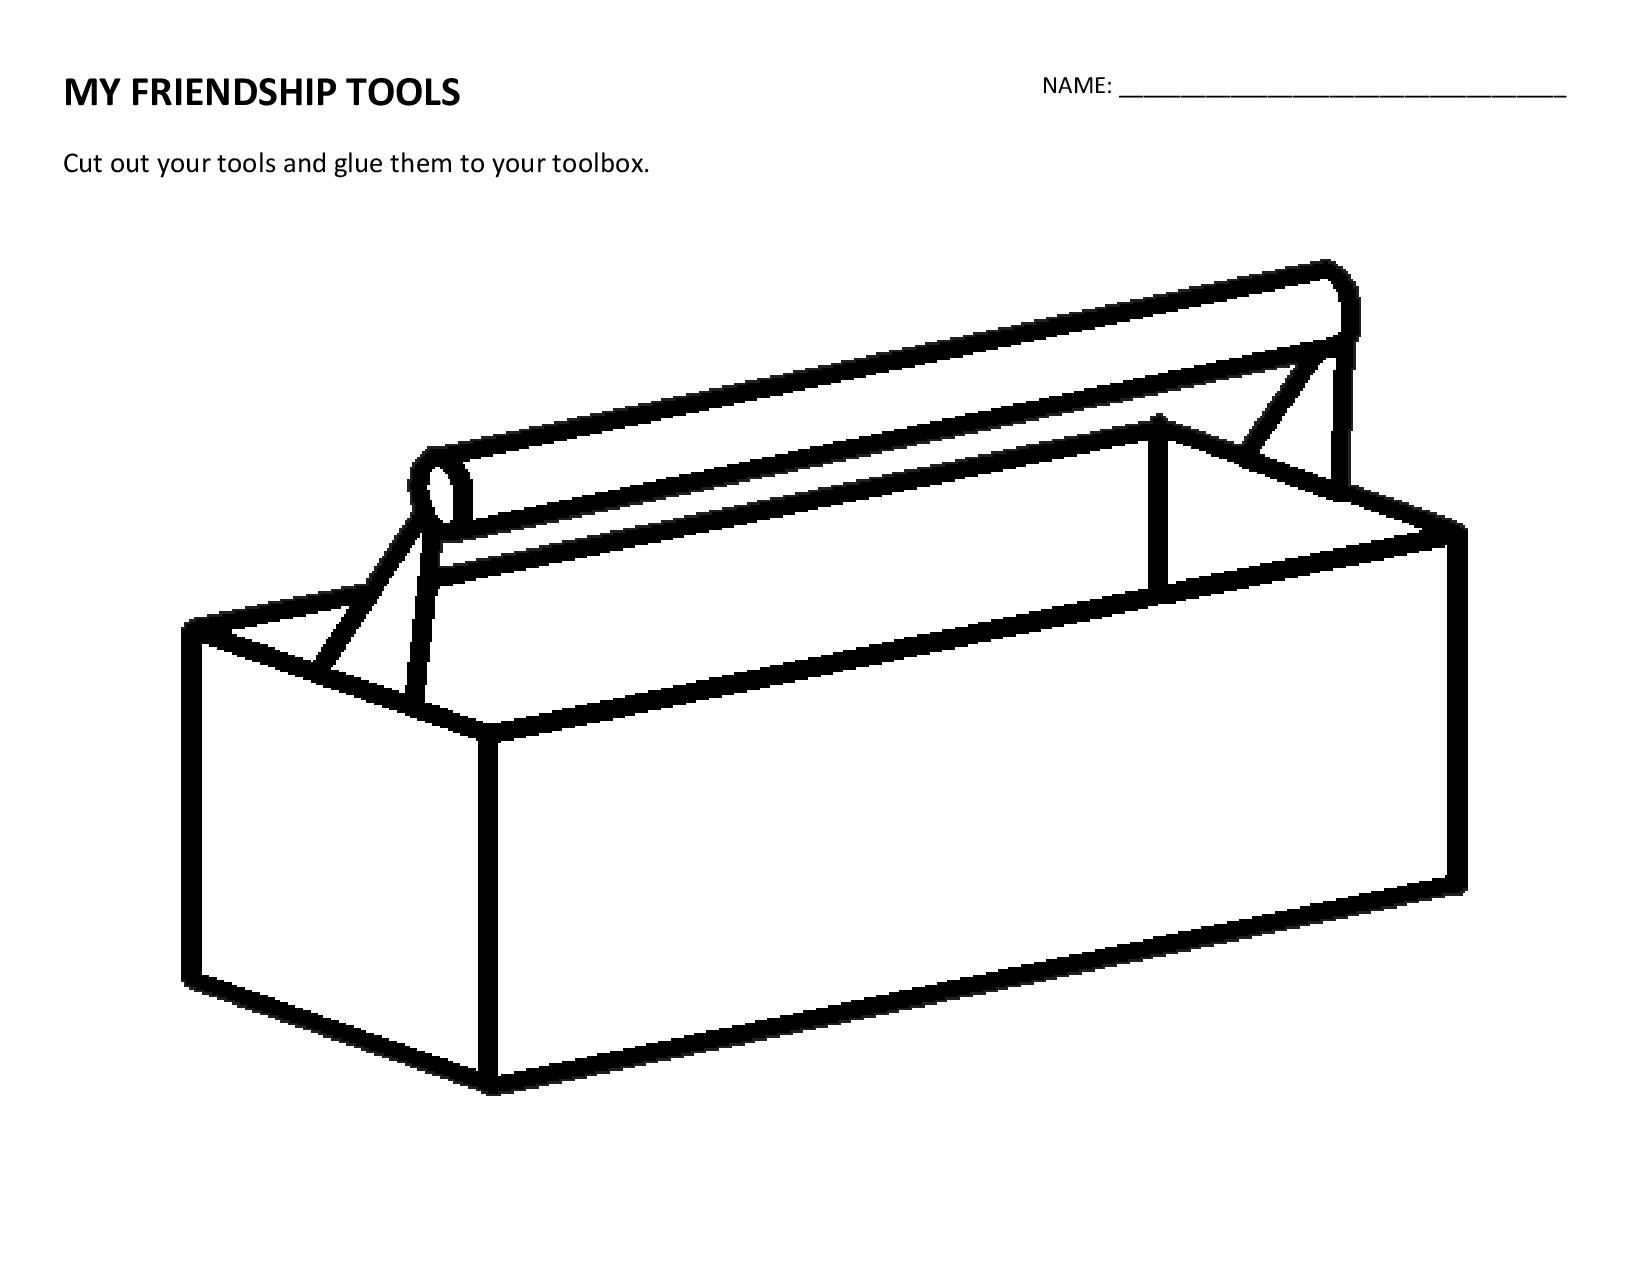 Created by a Project Cornerstone volunteer, a Friendship Toolbox